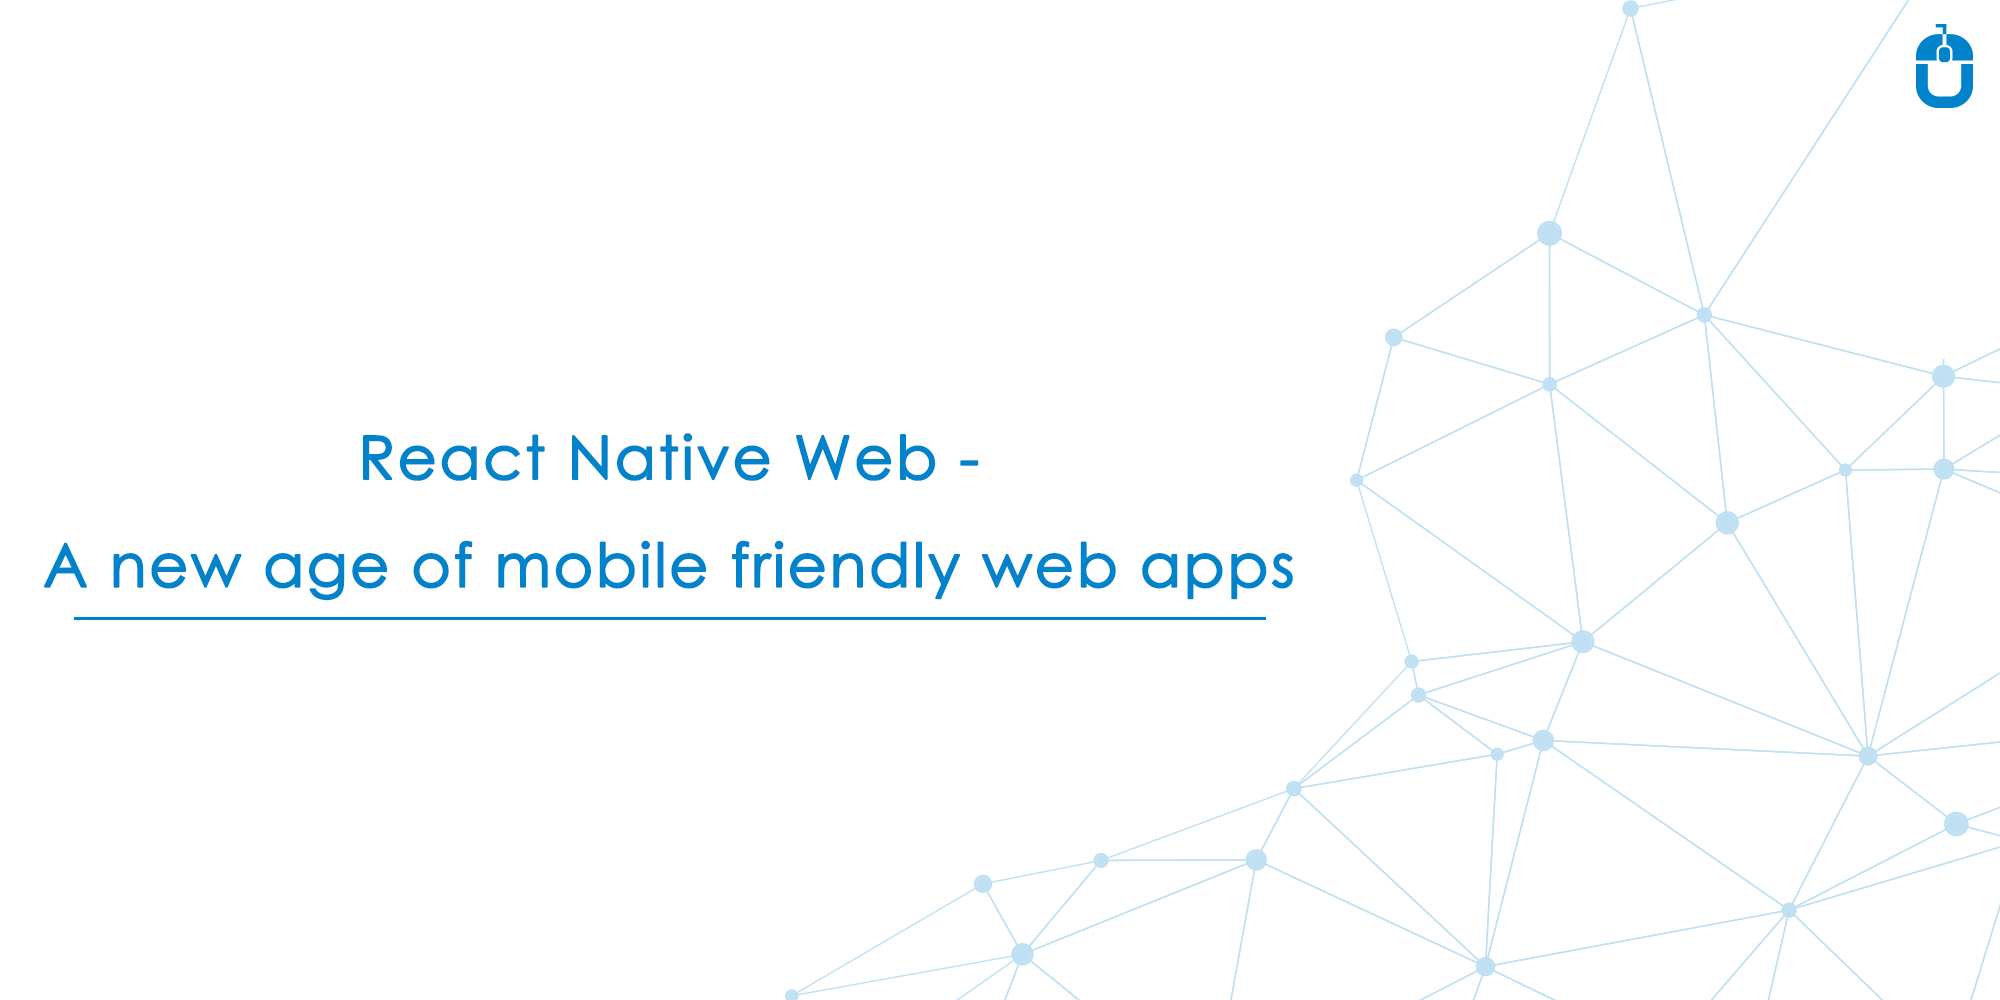 React Native Web - A New Age Of Mobile Friendly Web Apps